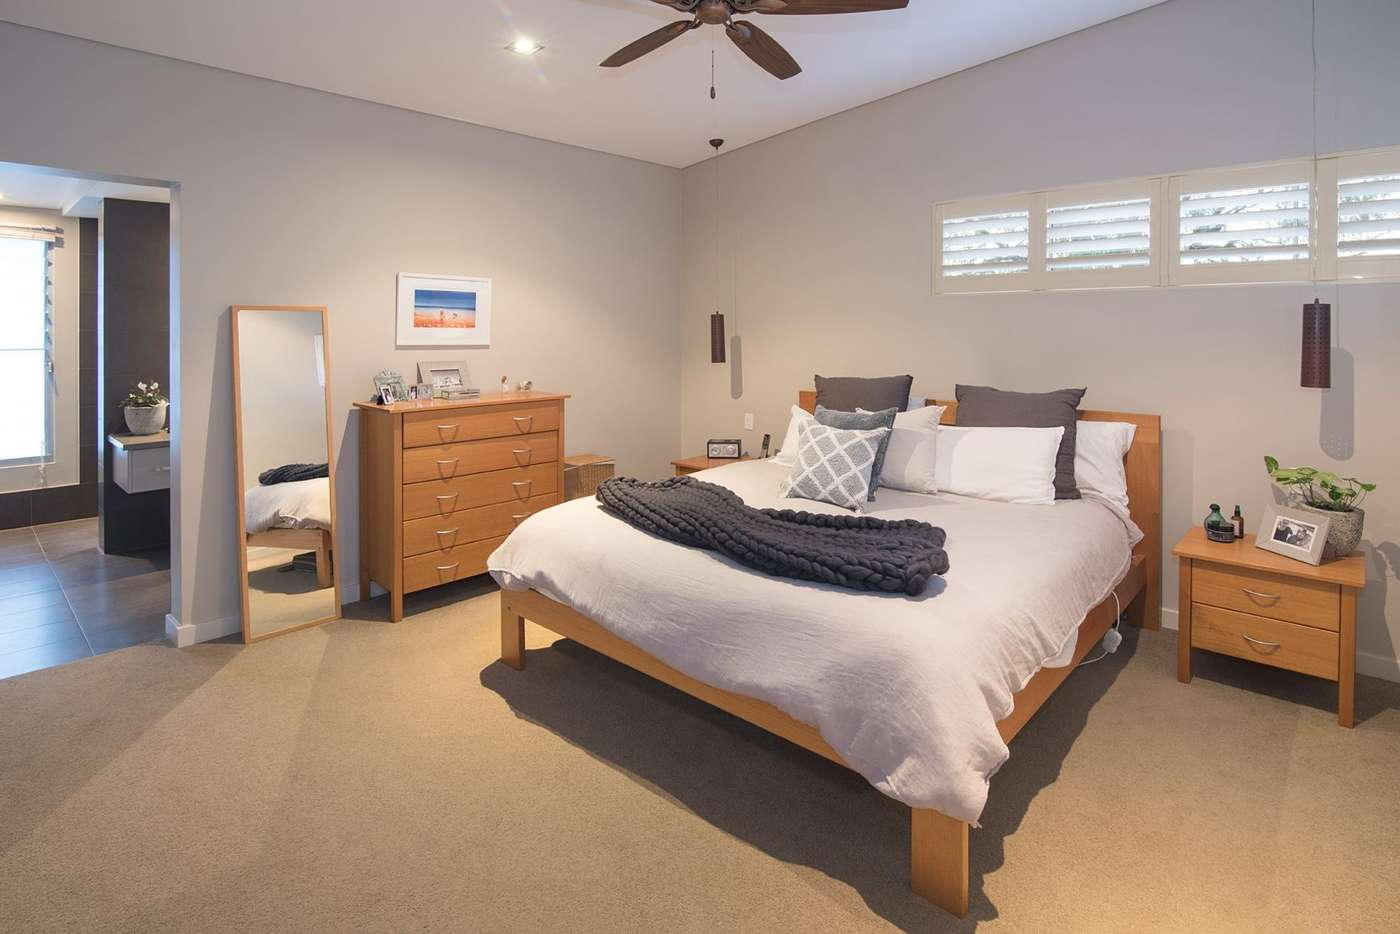 Seventh view of Homely house listing, 3 Peppermint Drive, Dunsborough WA 6281